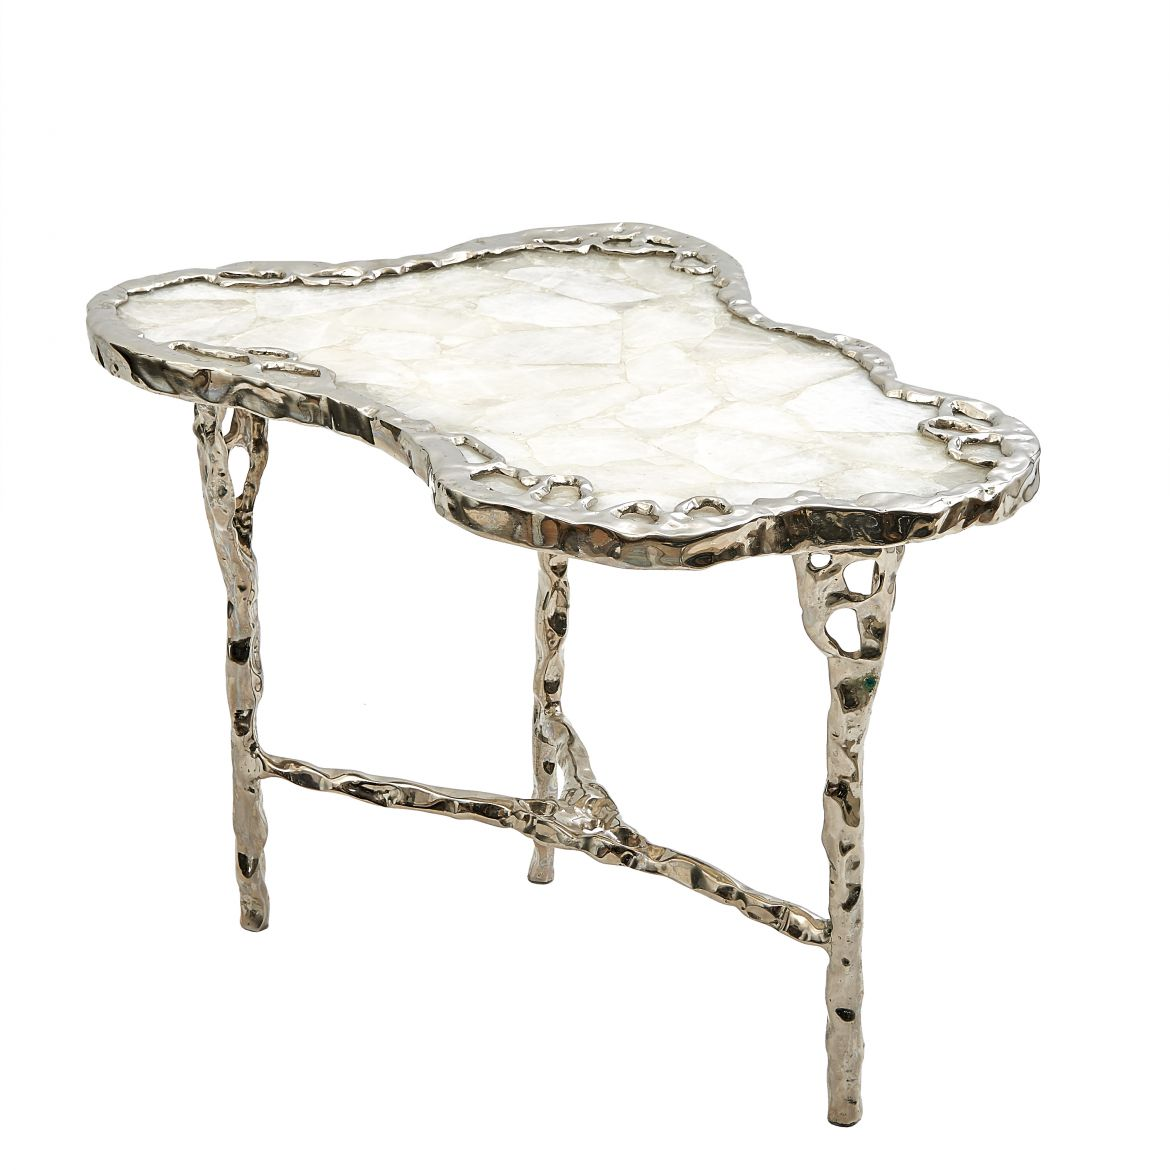 Arriau Rock Crystal Flack Table